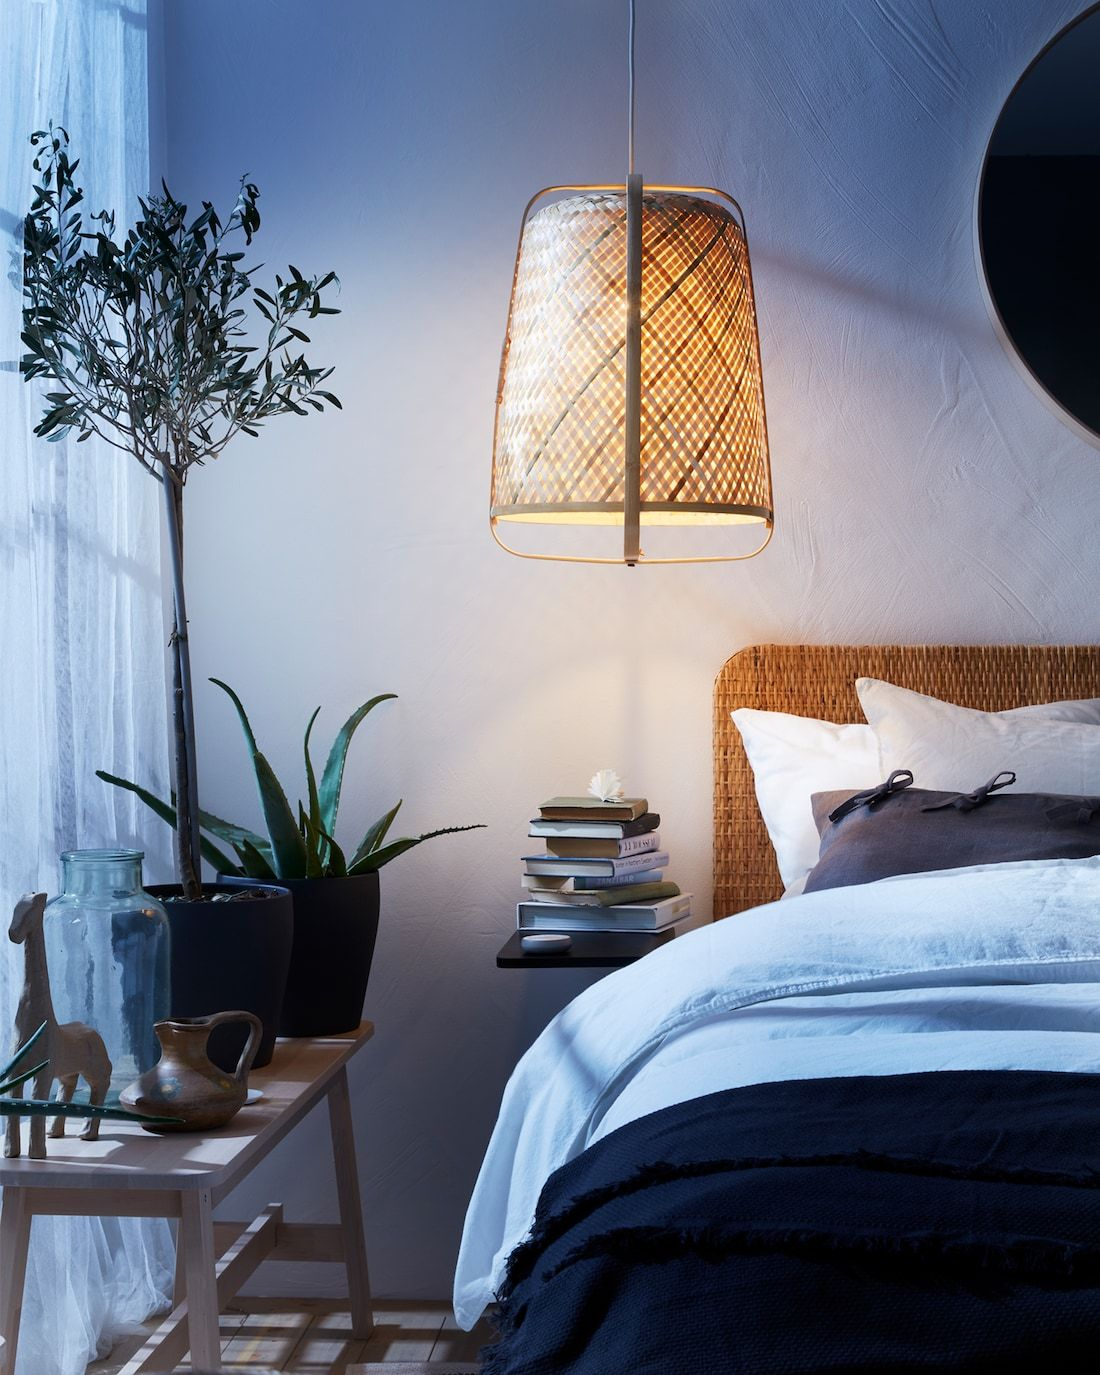 5 things you can pick up from IKEA to update your bedroom for under £100